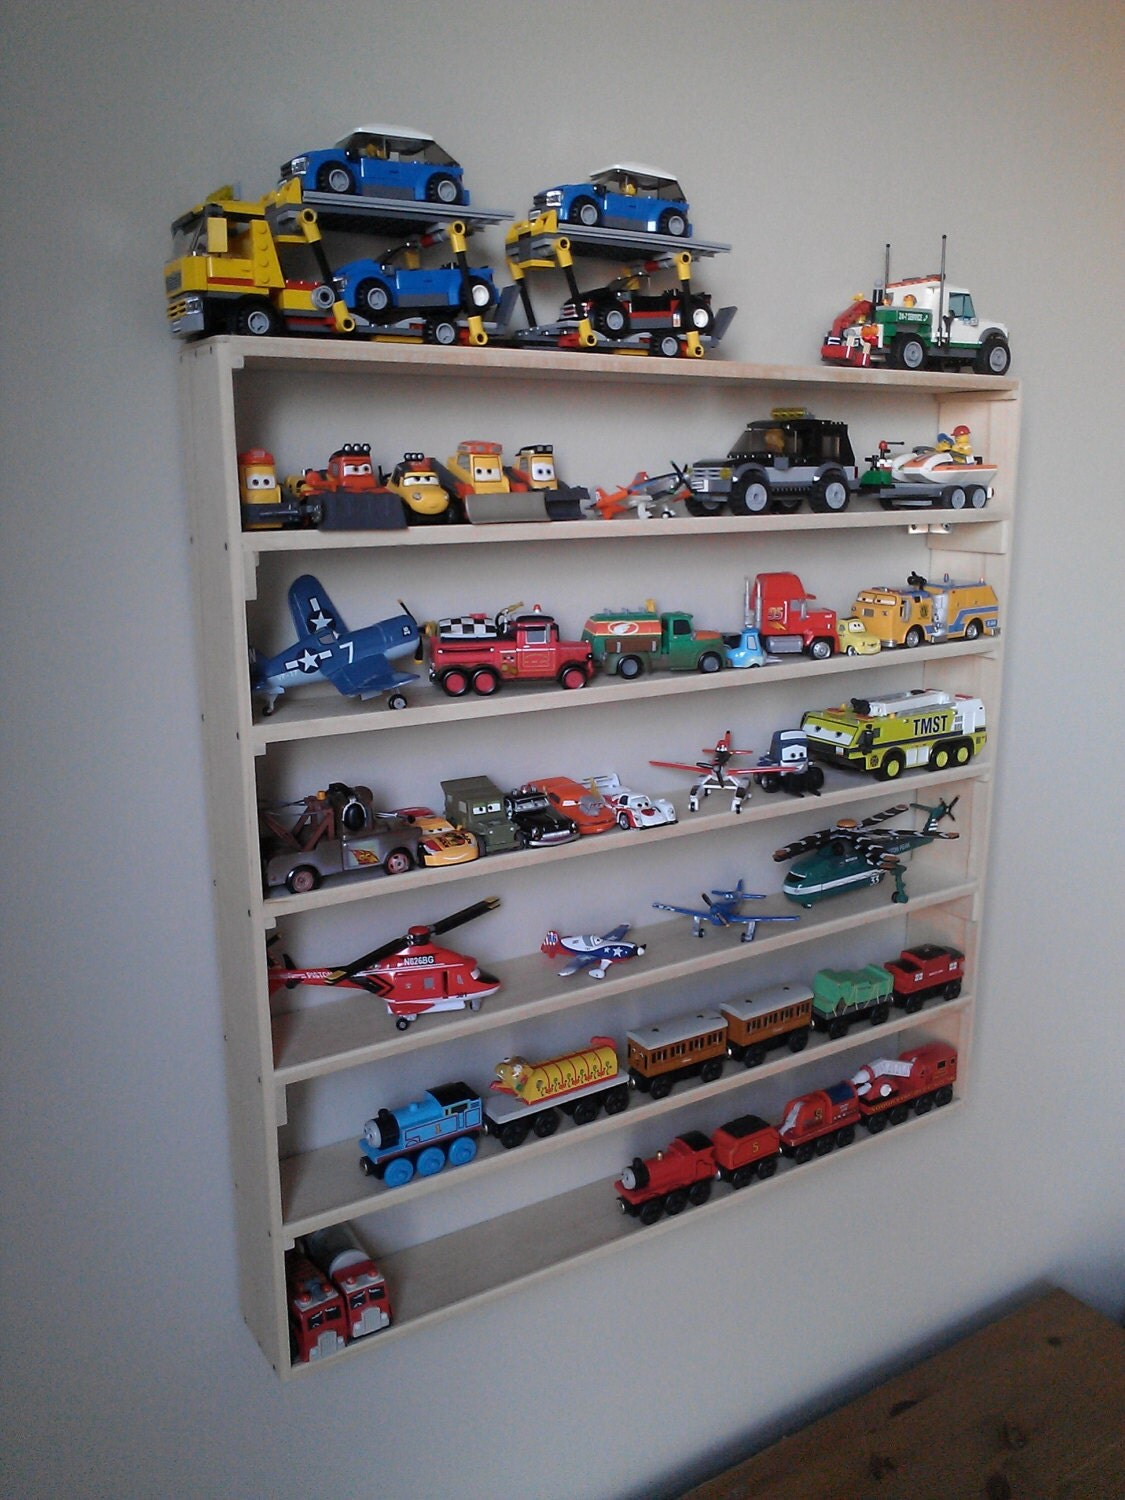 Toy Car Rack : Lego wall display rack toy storage minifigures boy room